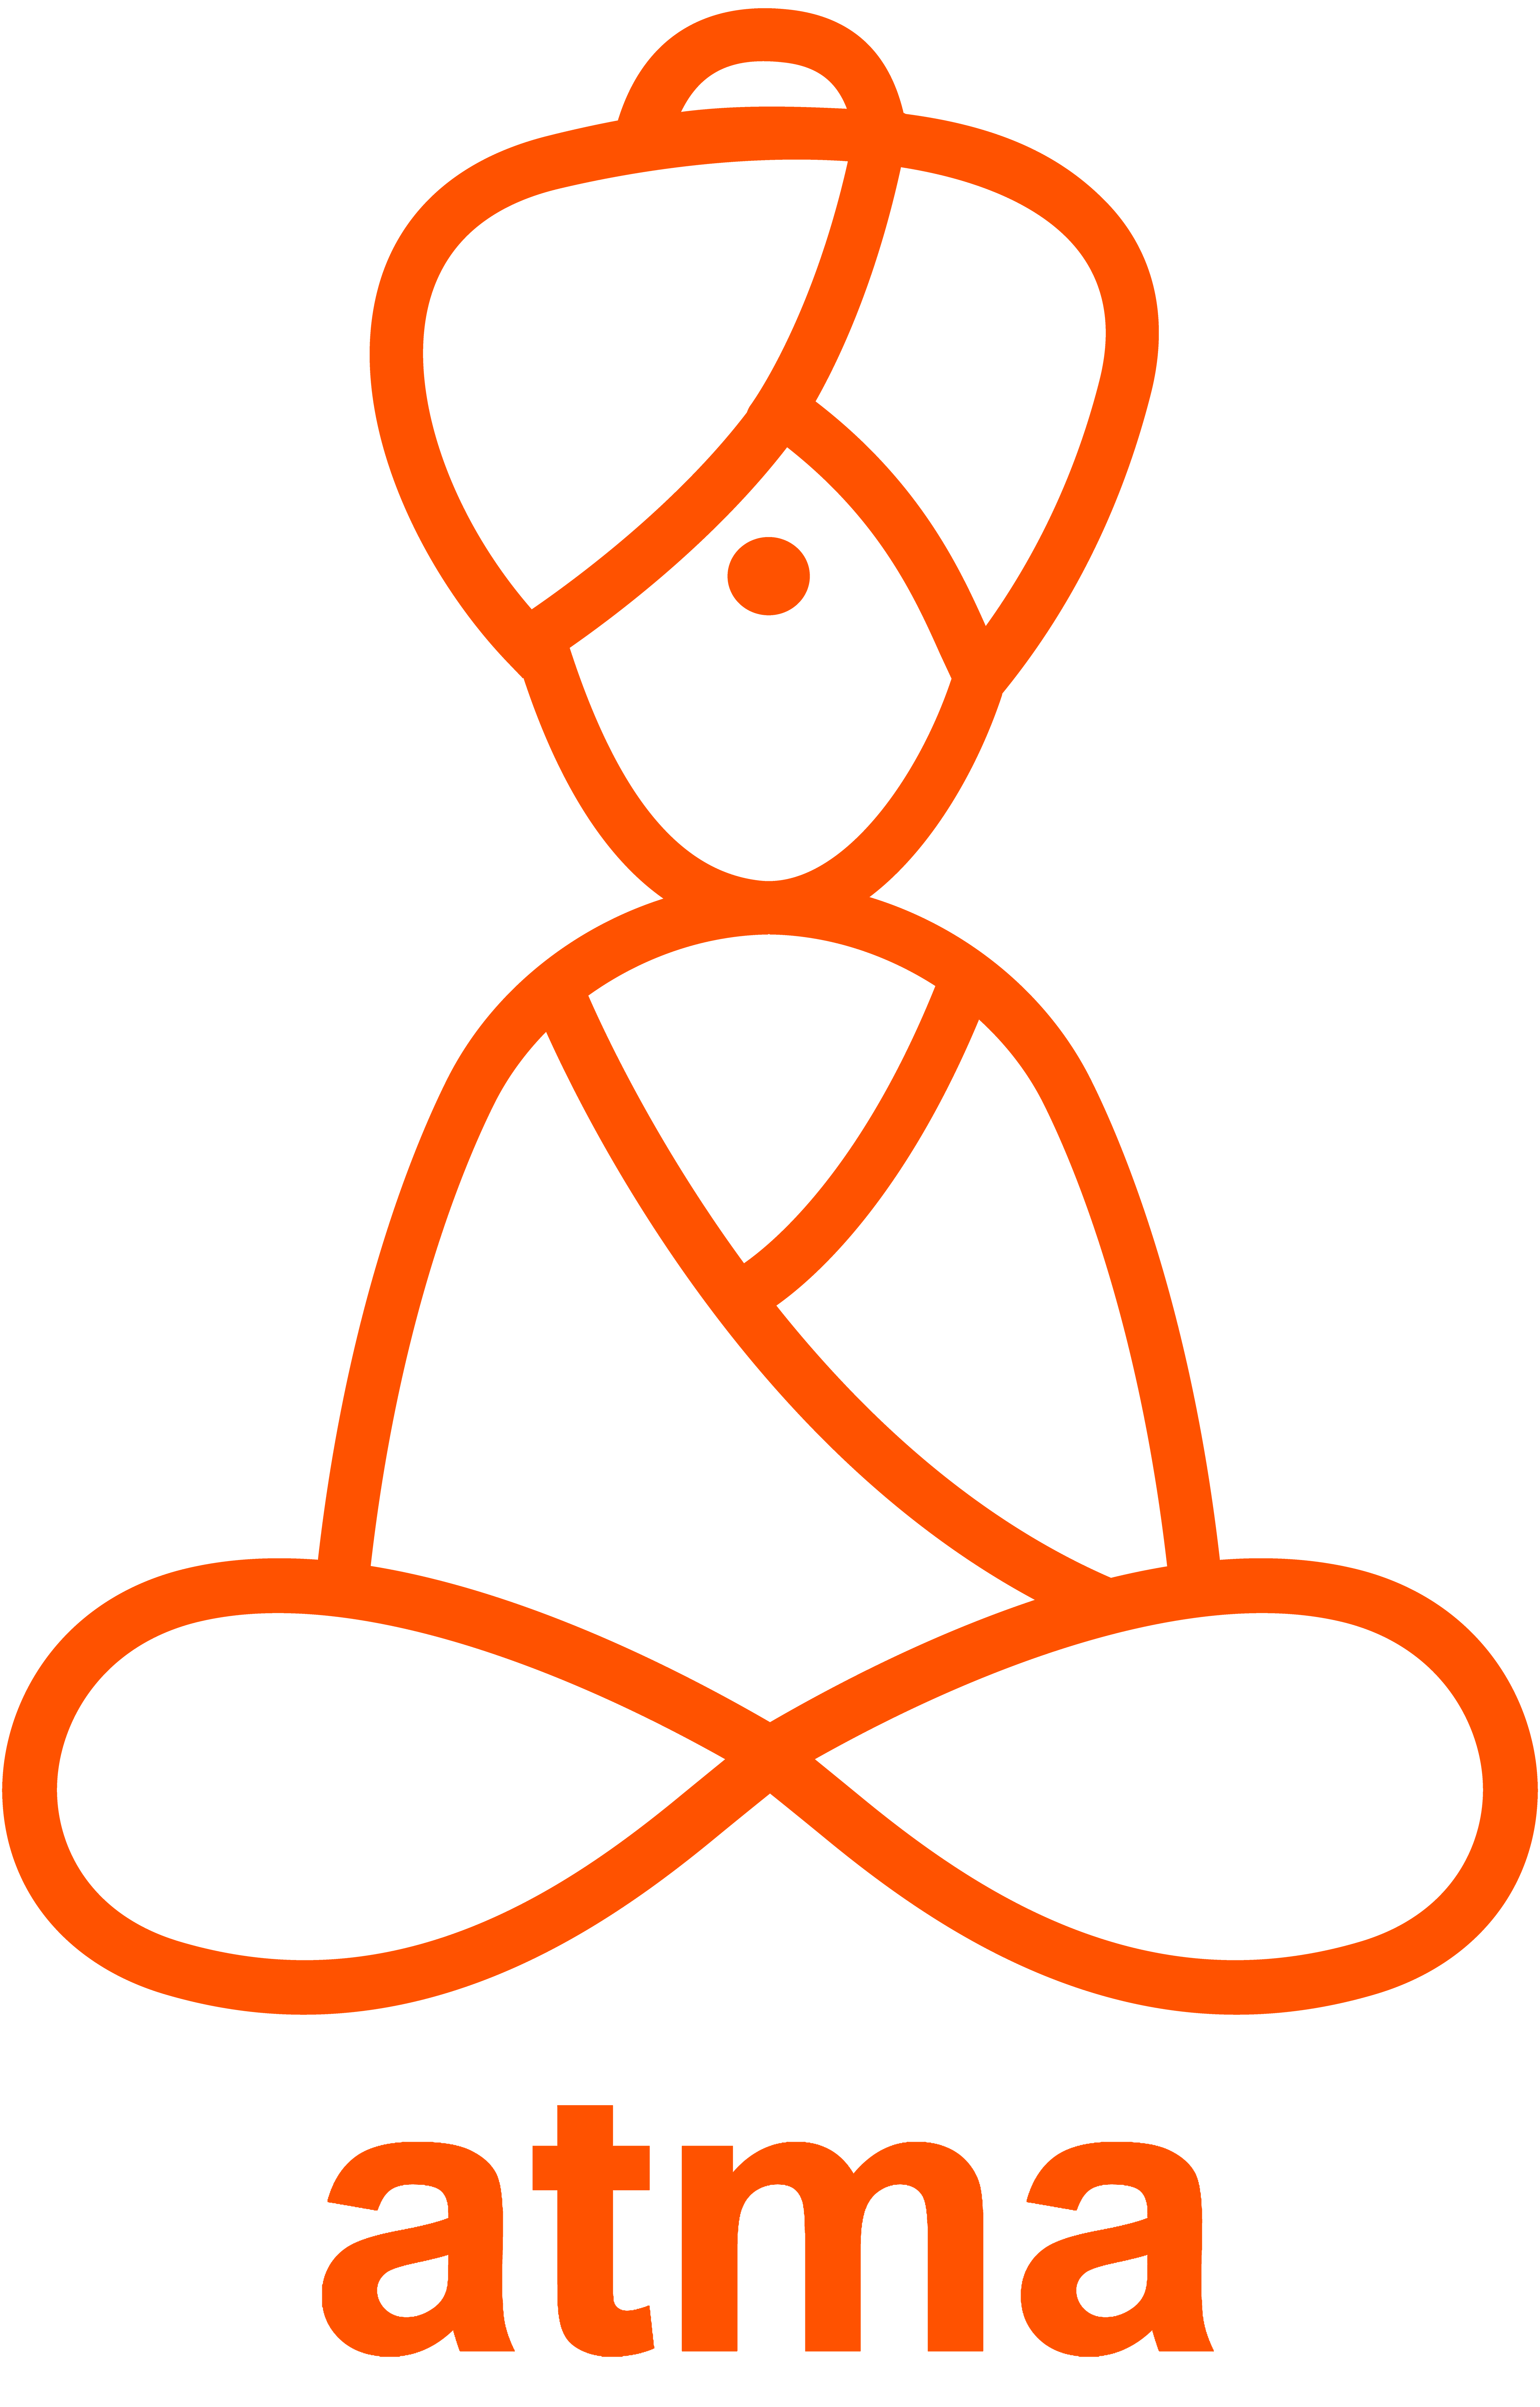 Logo-atma-petit-droit-orange.png